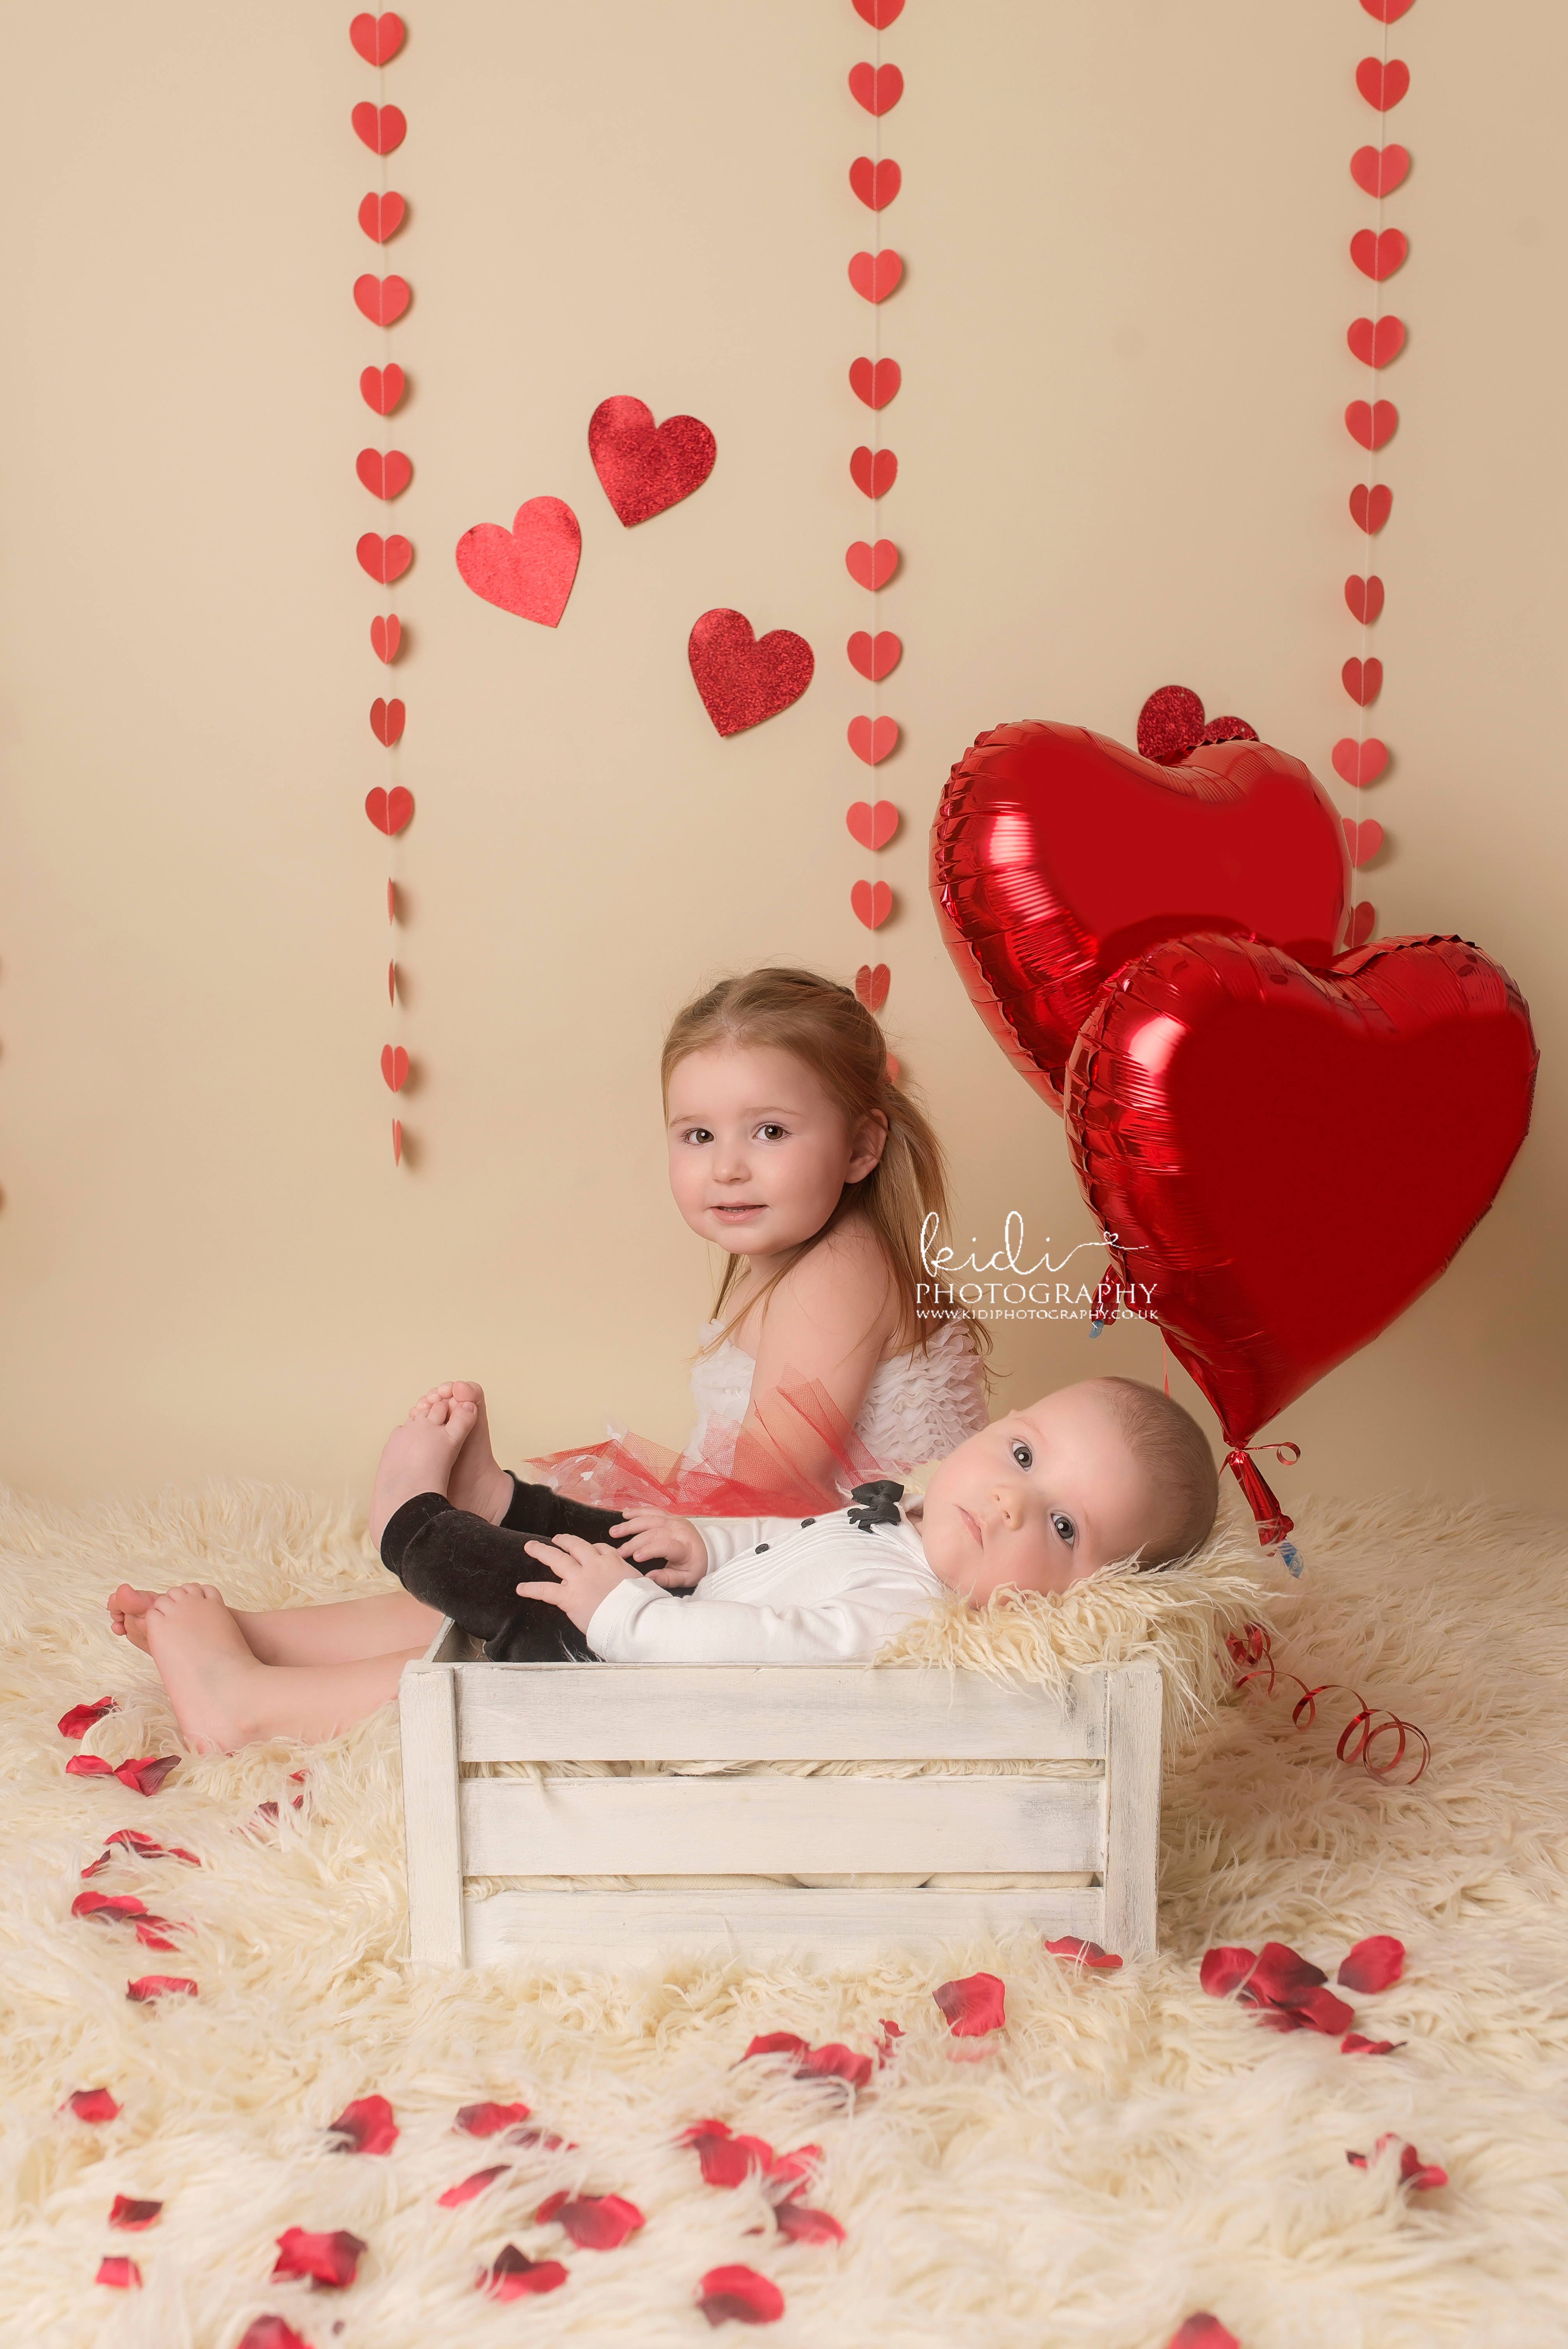 Toddler Photographer in Walsall